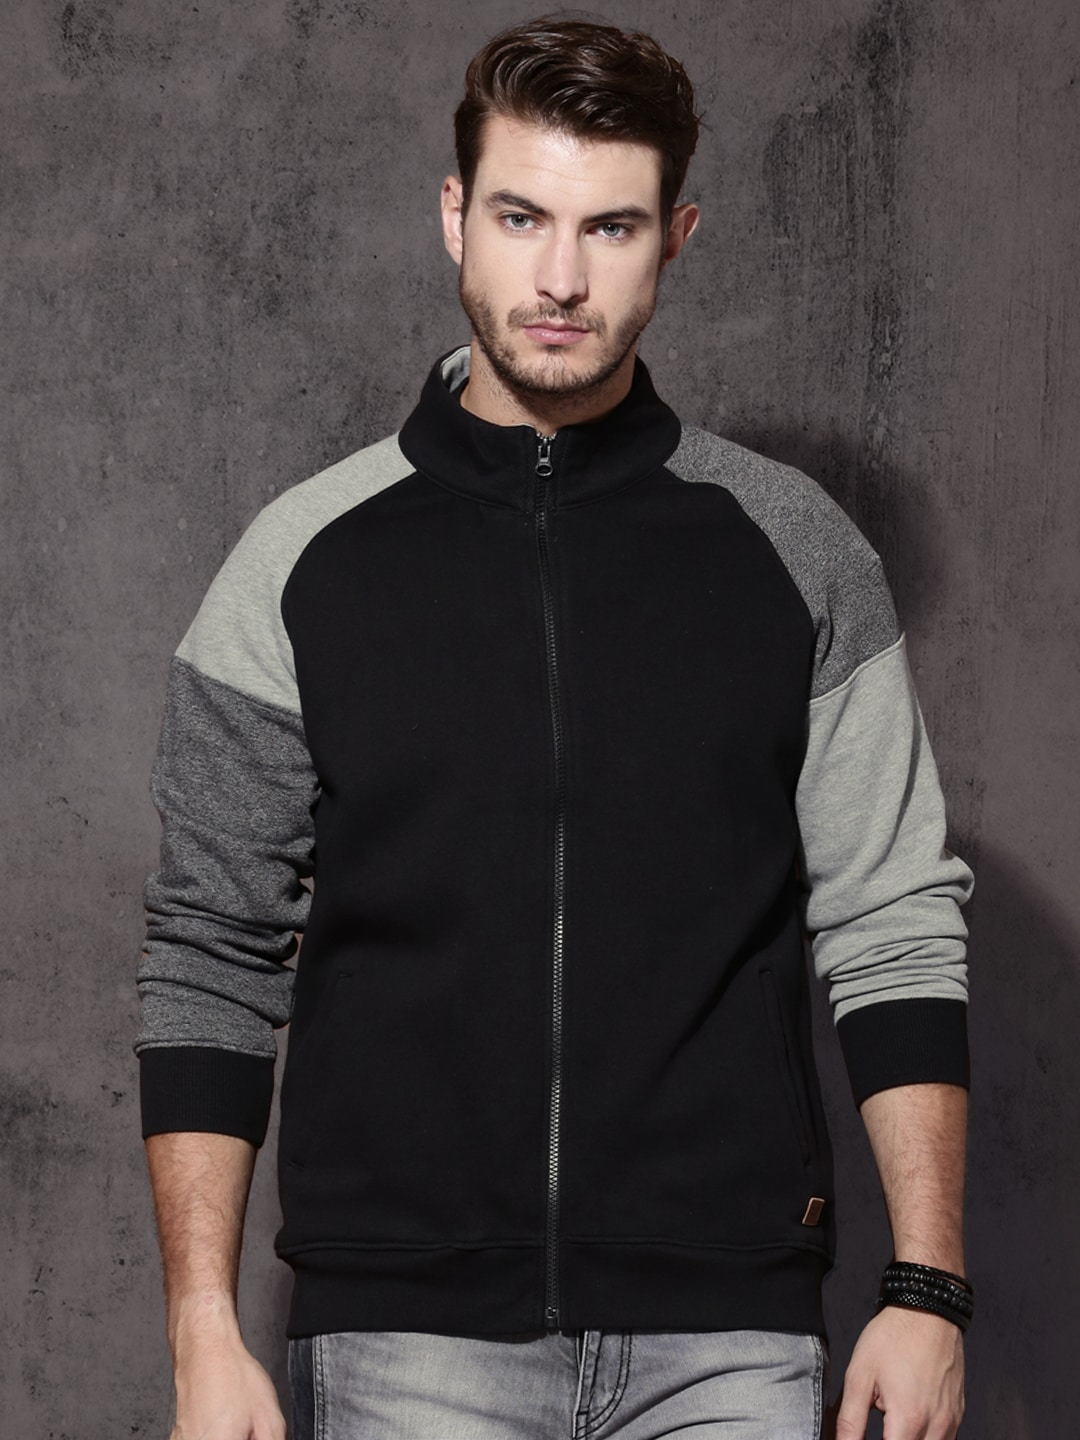 Roadster Men Black & Grey Solid Sweatshirt image